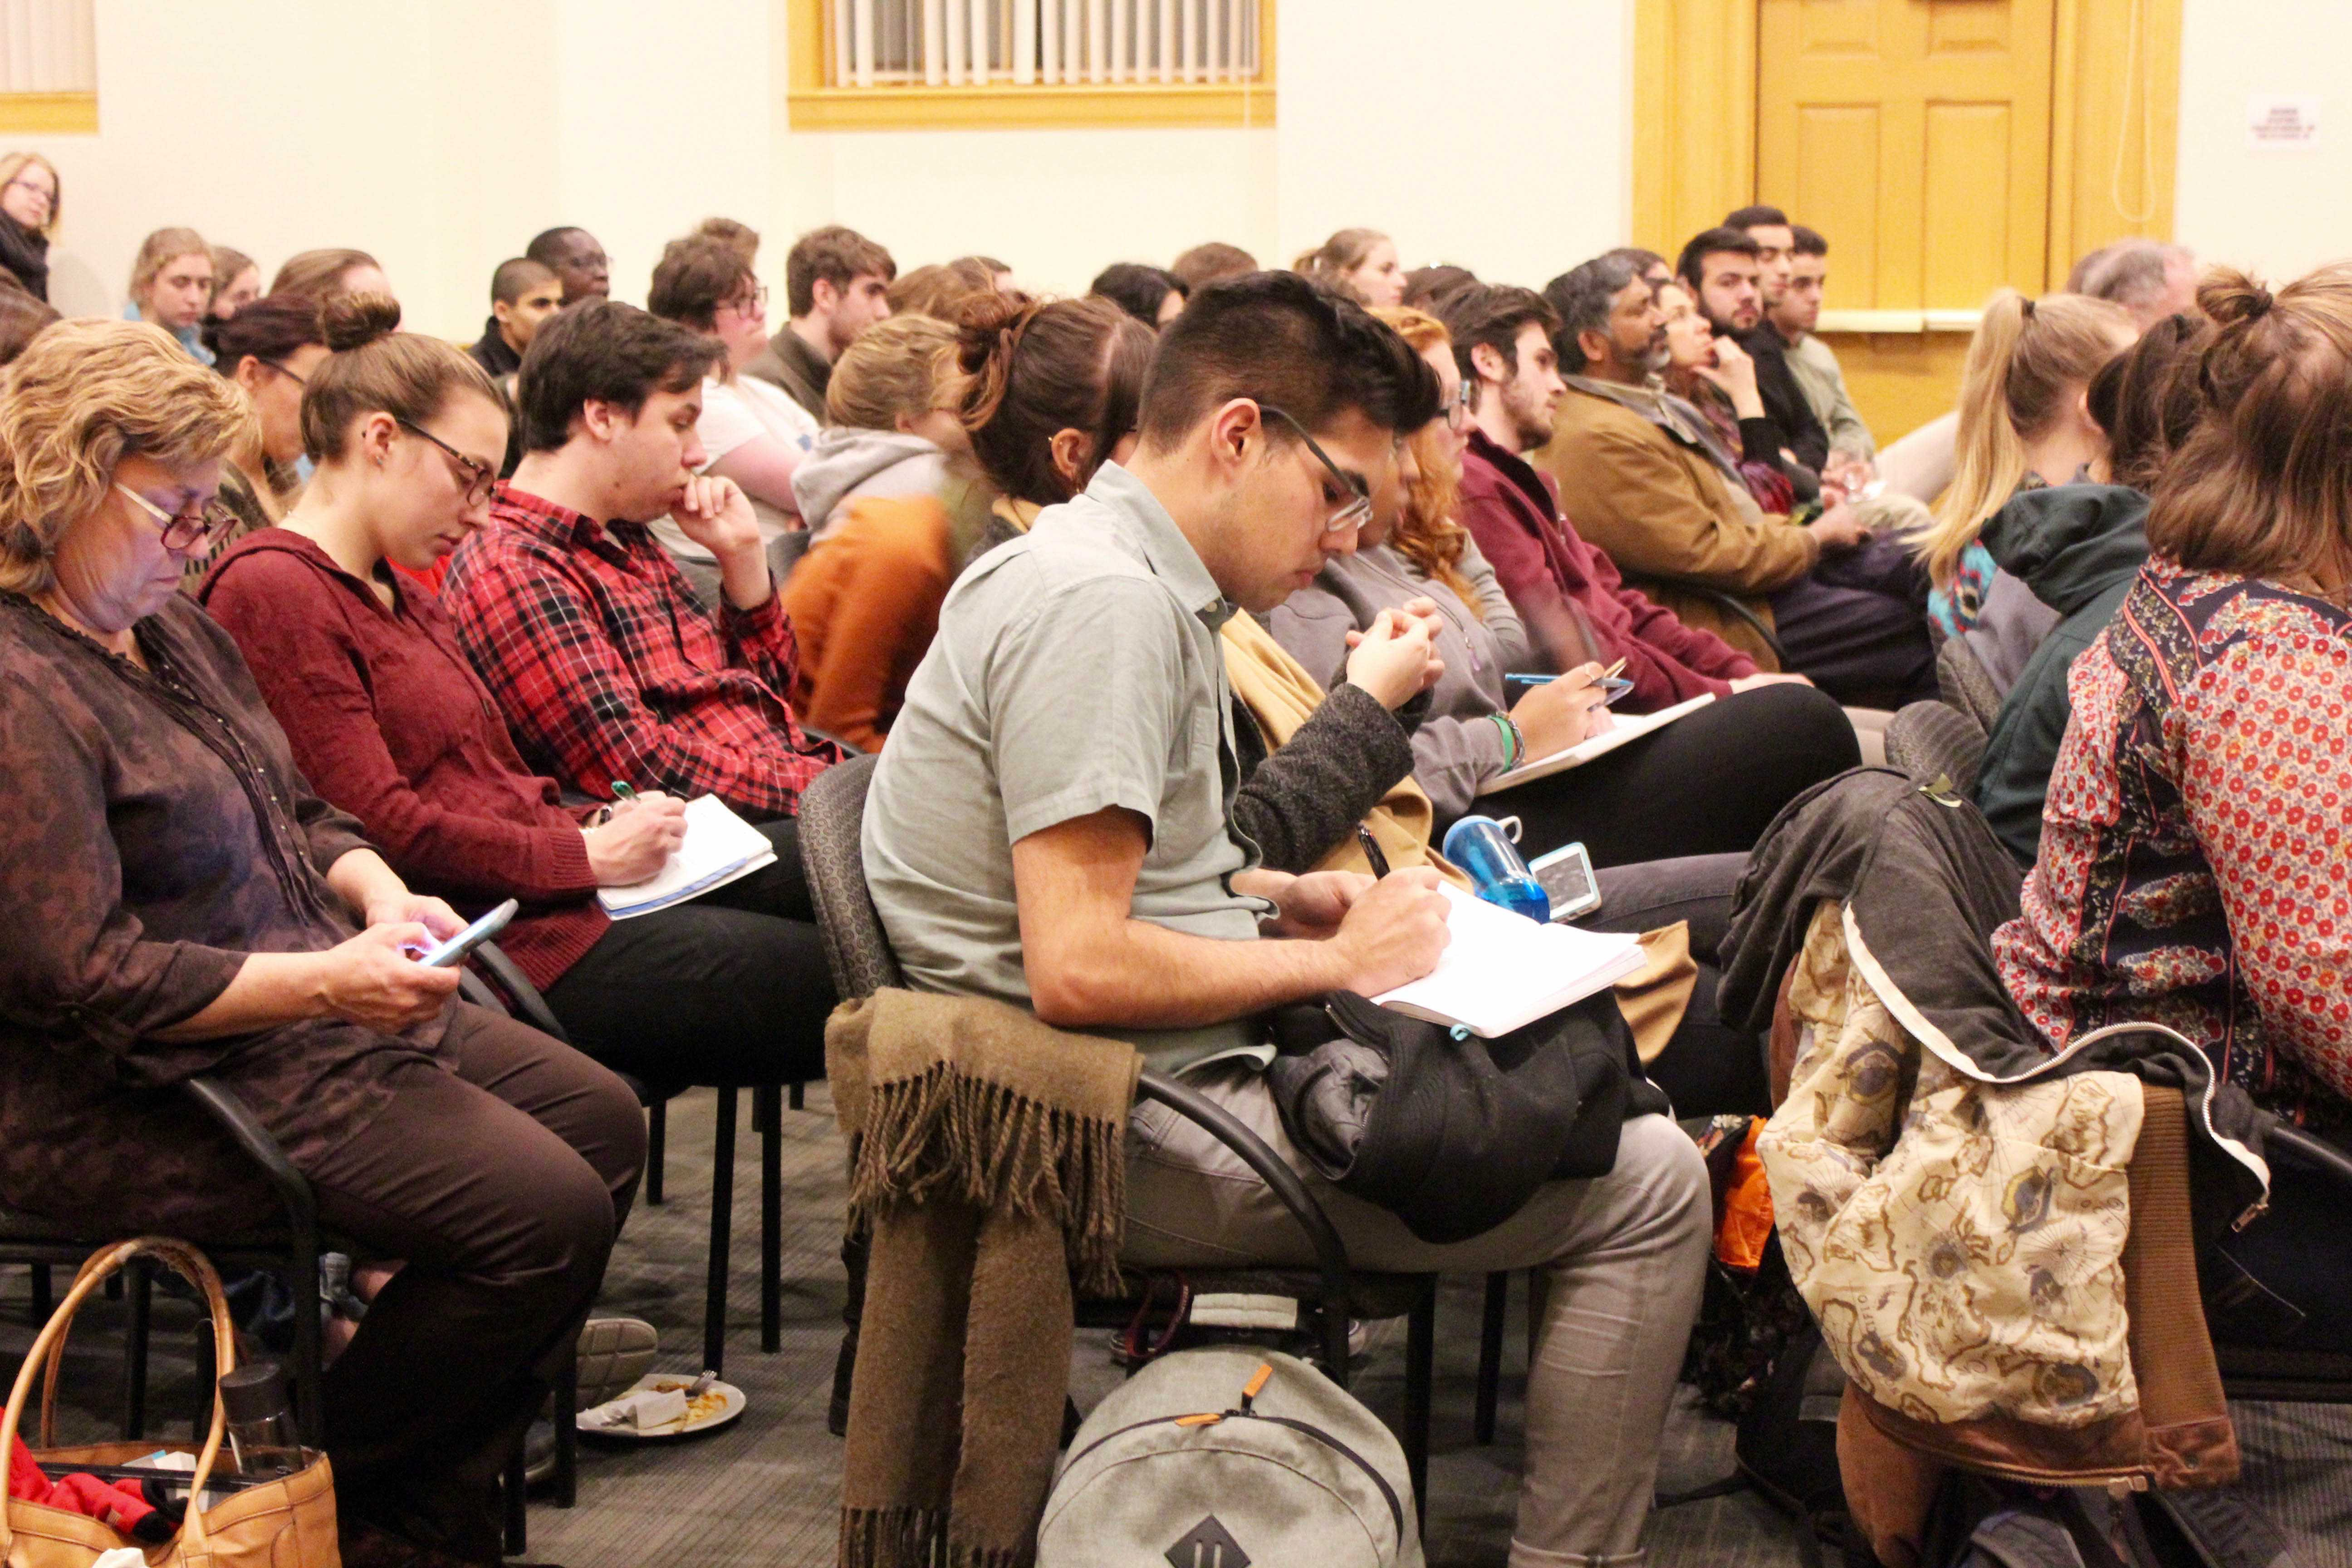 Students, faculty and community members gather in Weyerhaeuser Boardroom on  Thursday, Feb. 16 to hear a panel discussion on national and international Islamophobia. Photo by Emma Carray '20.